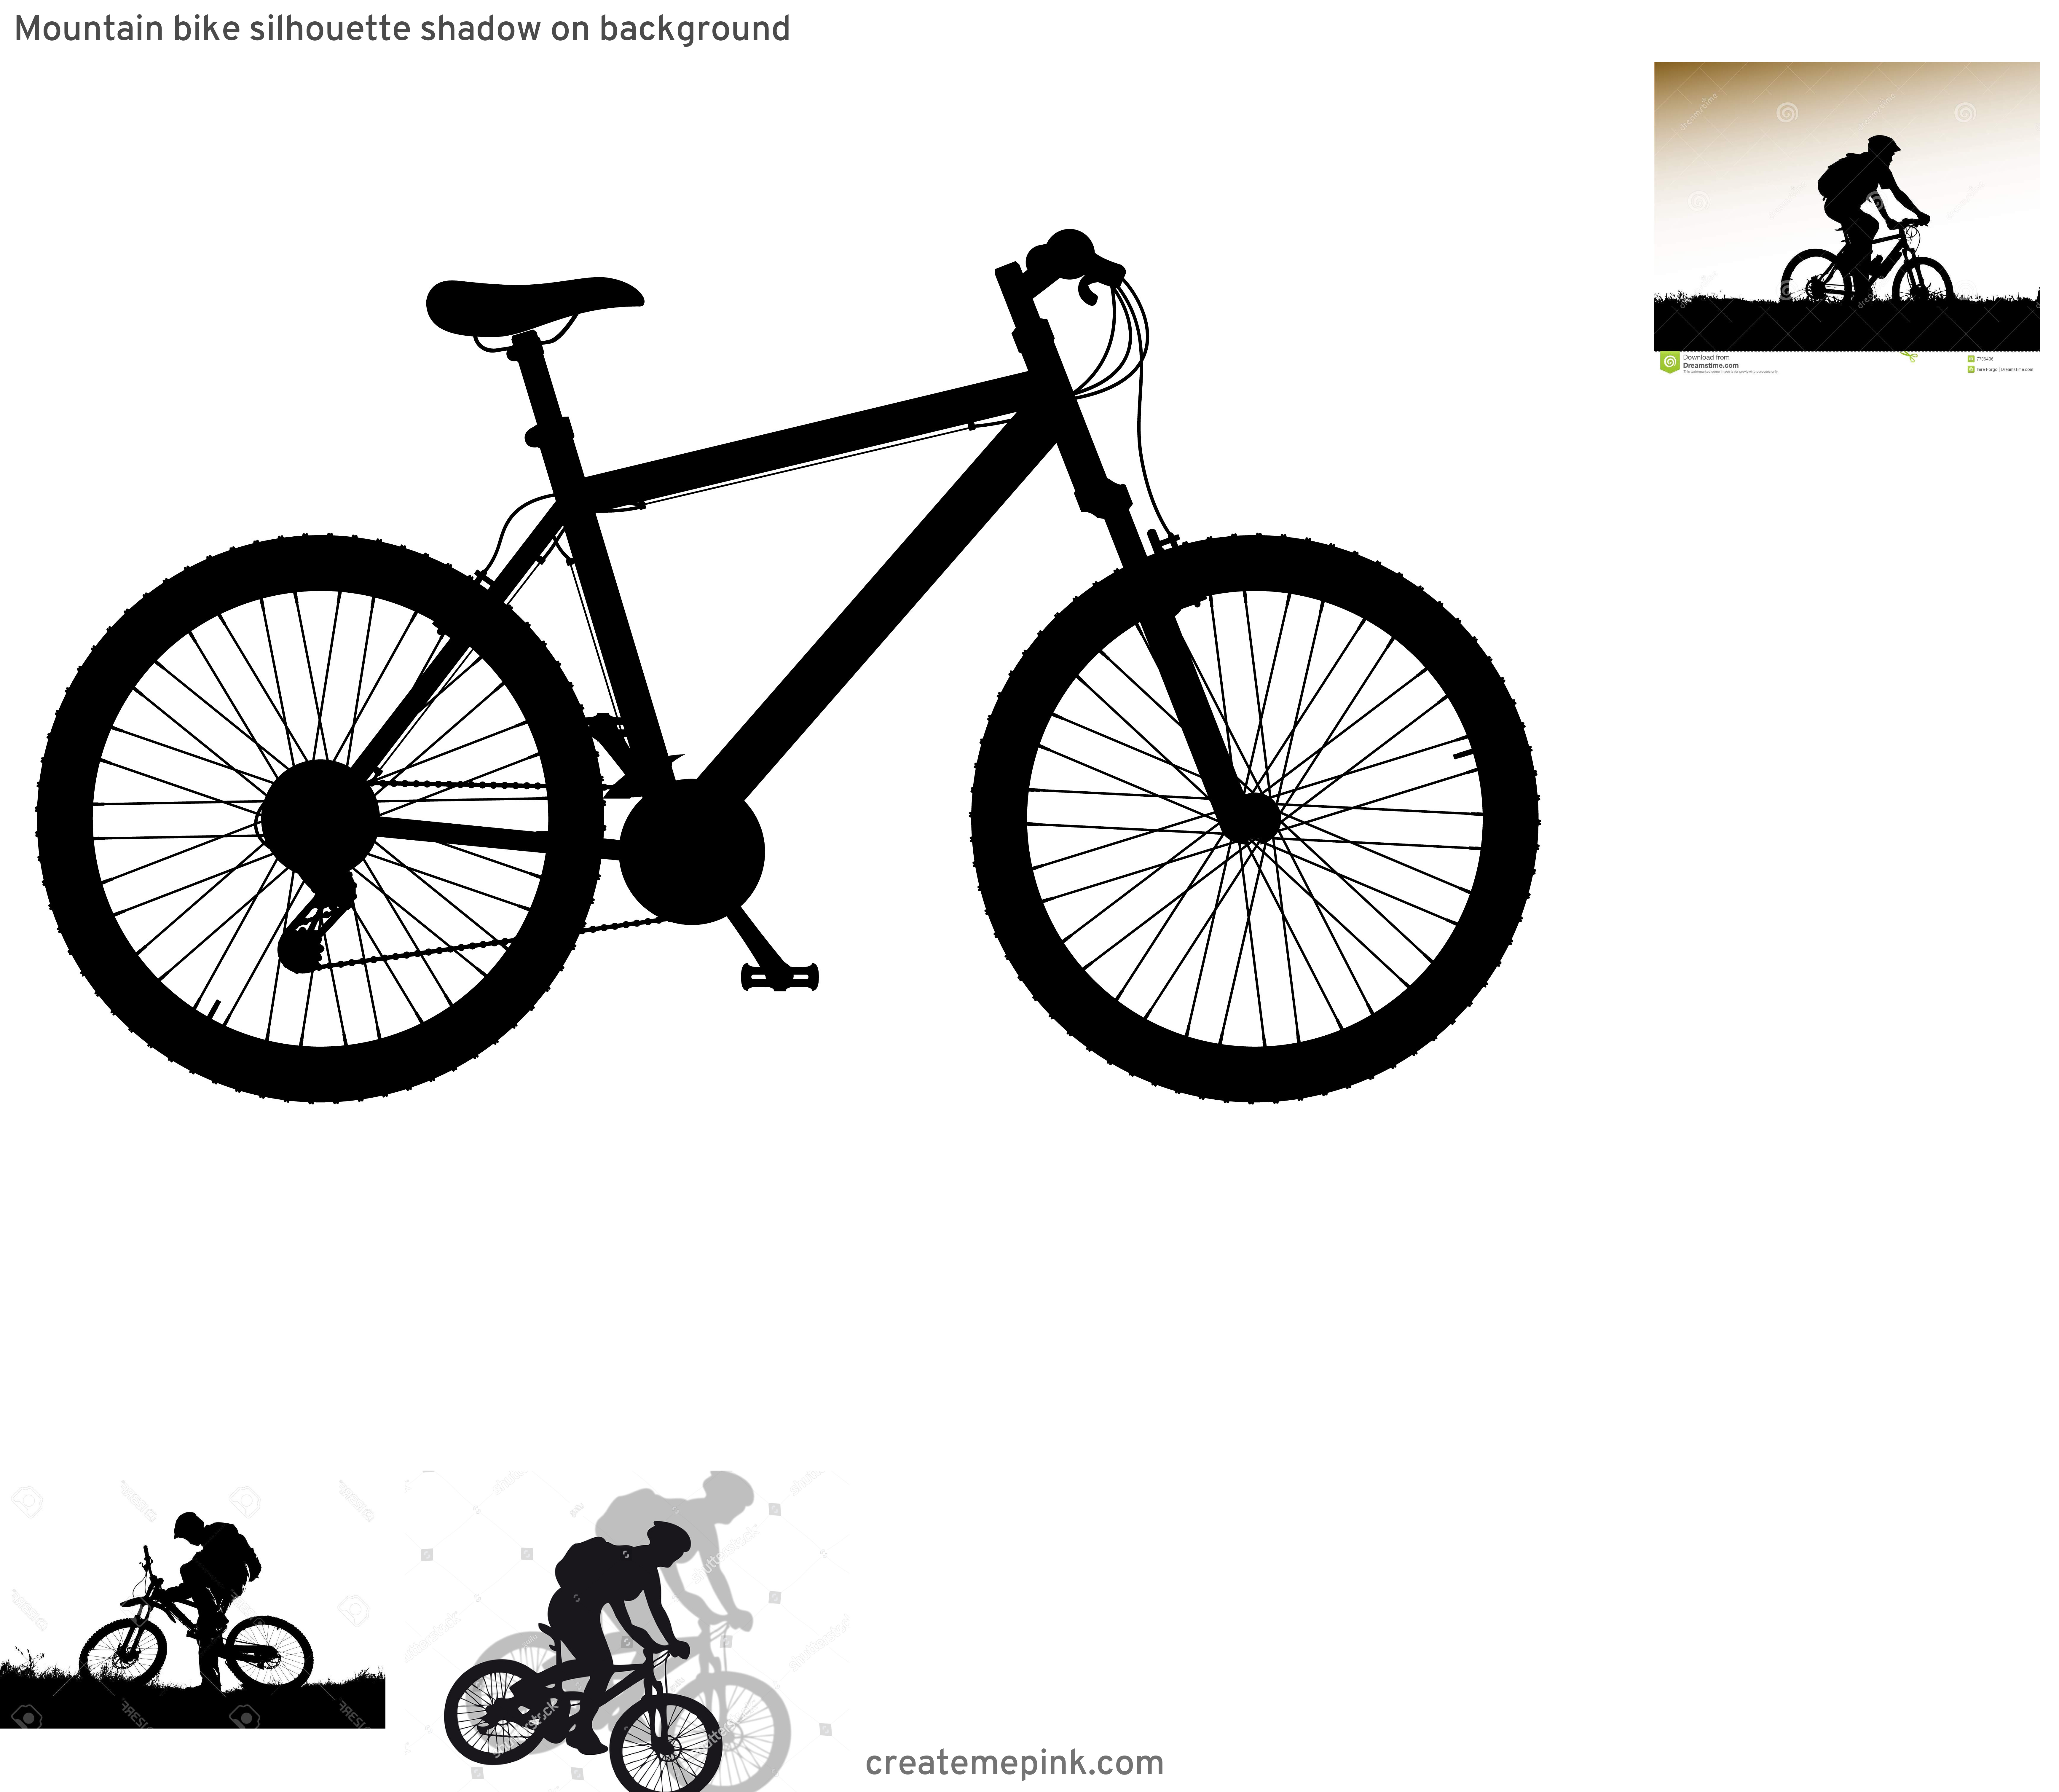 Mountain Bike Silhouette Vector: Mountain Bike Silhouette Shadow On Background